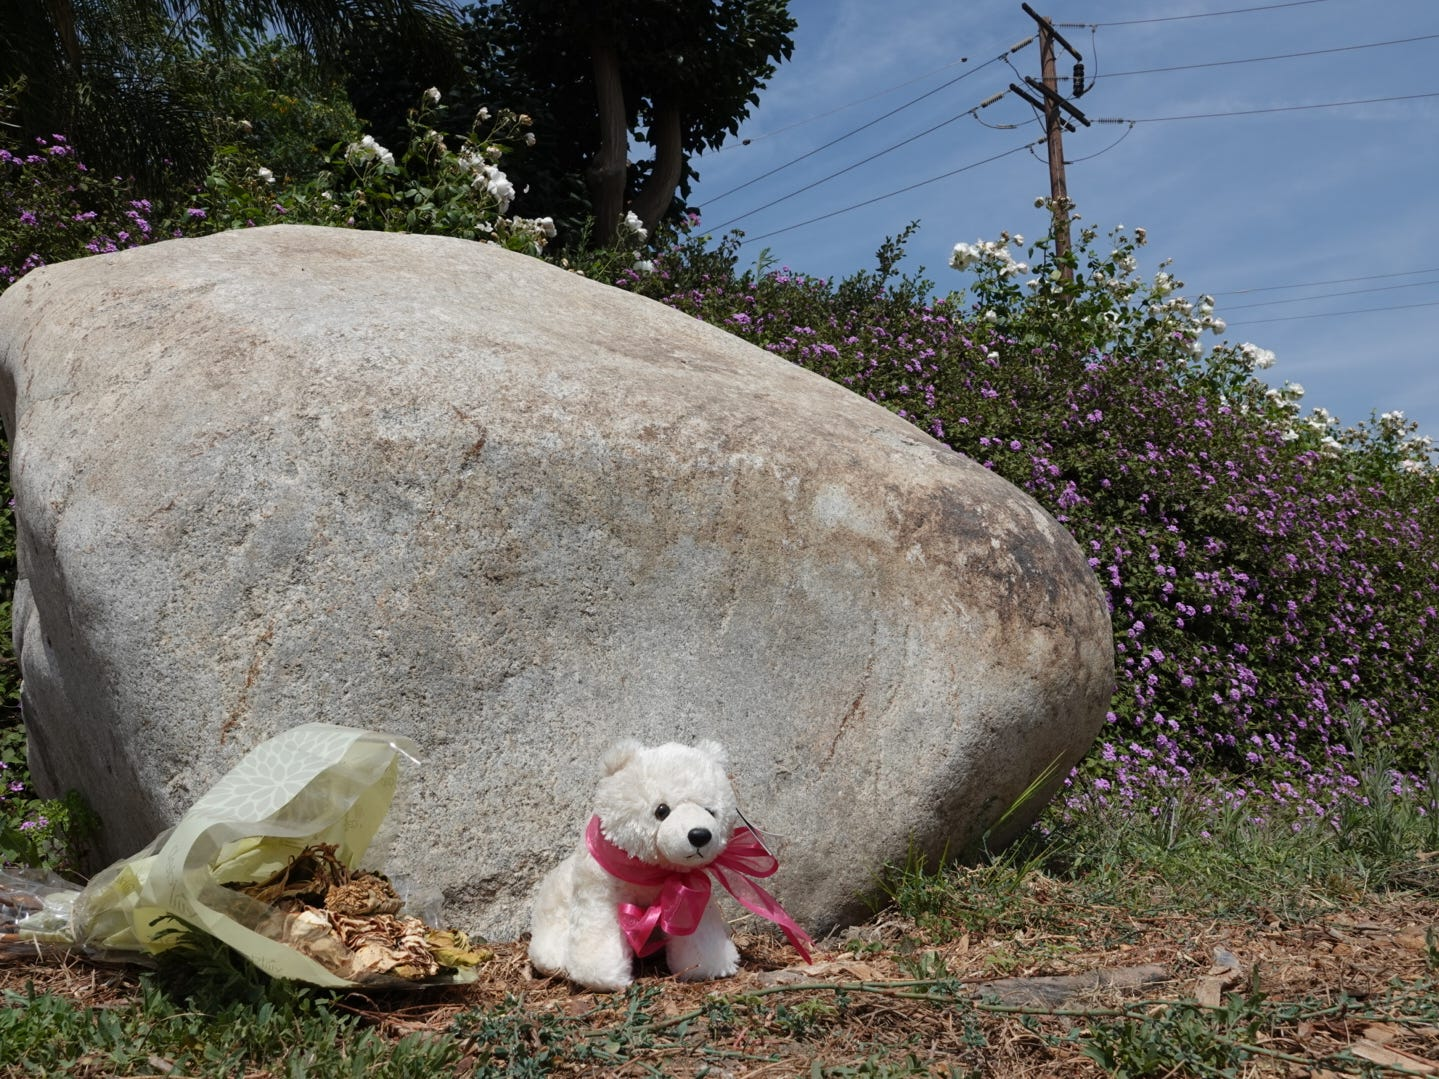 A stuffed bear and a dried bouquet of flowers were still visible Monday near the scene of a fatal crash on Highway 118 at Balcom Canyon Road that killed a 9-year-old boy this month.